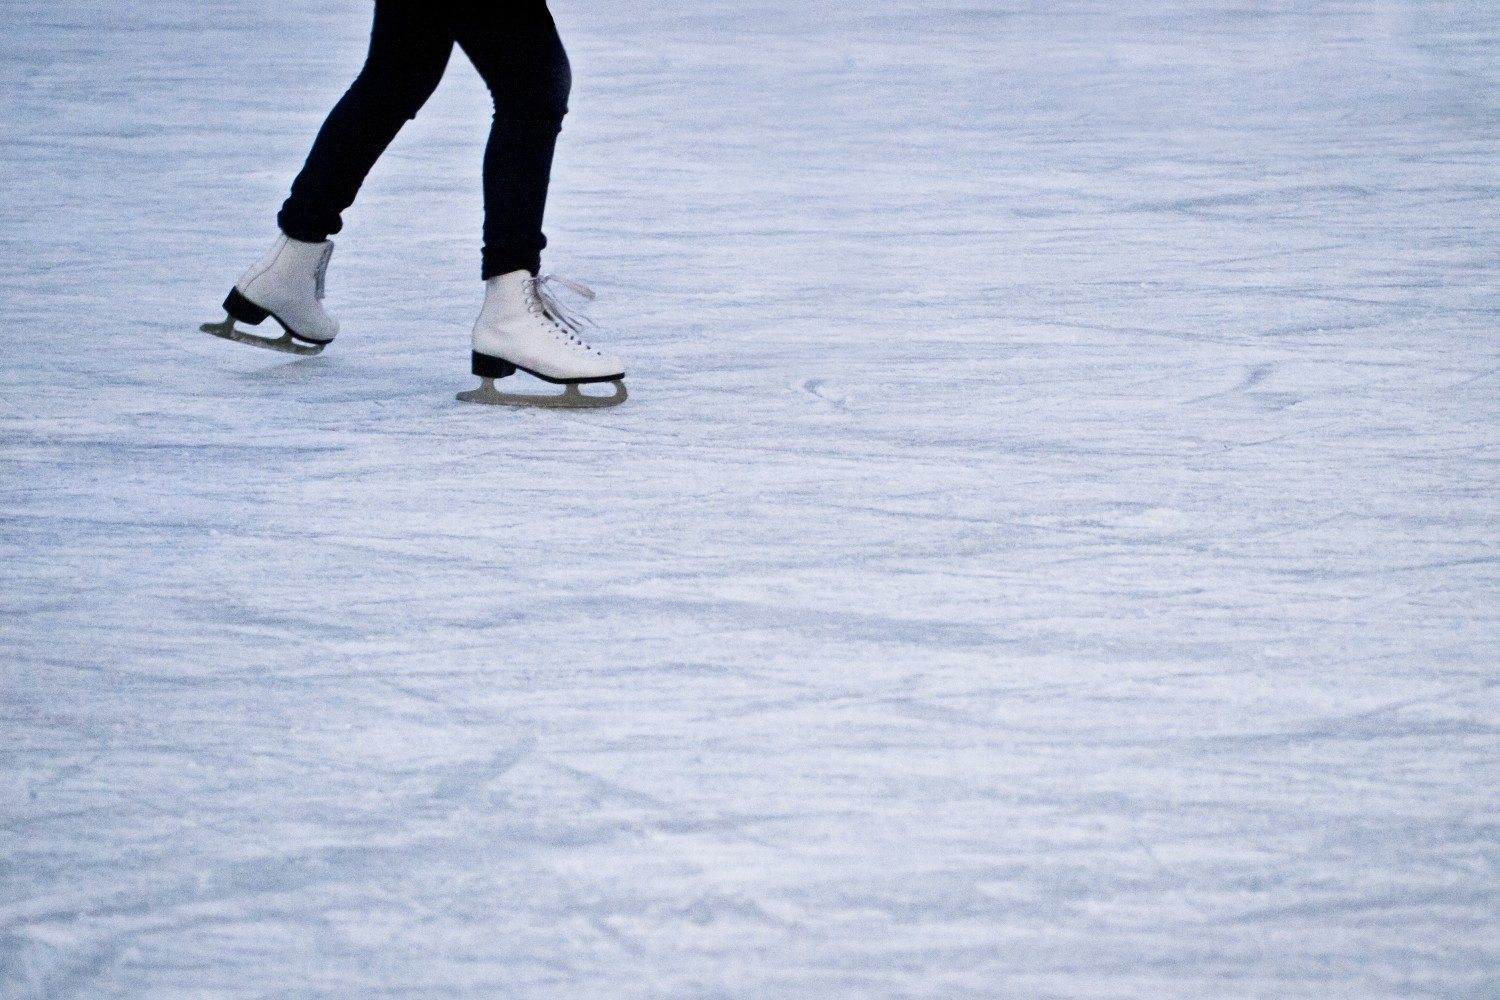 Become a professional ice skater this winter season at Battery Park City